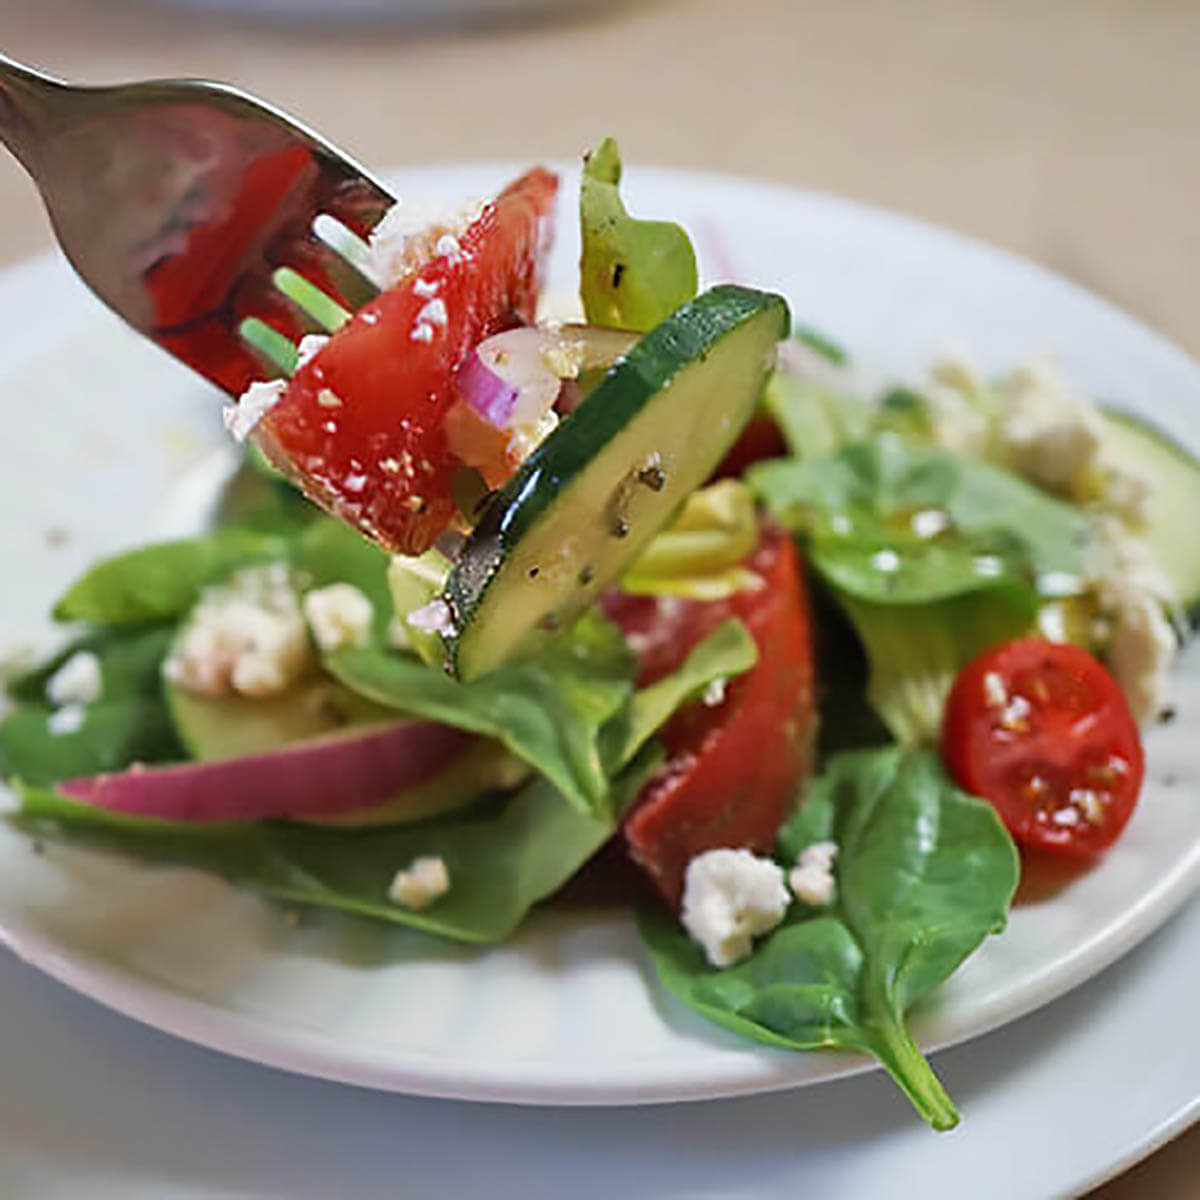 Cucumber Tomato Salad on plate with fork.